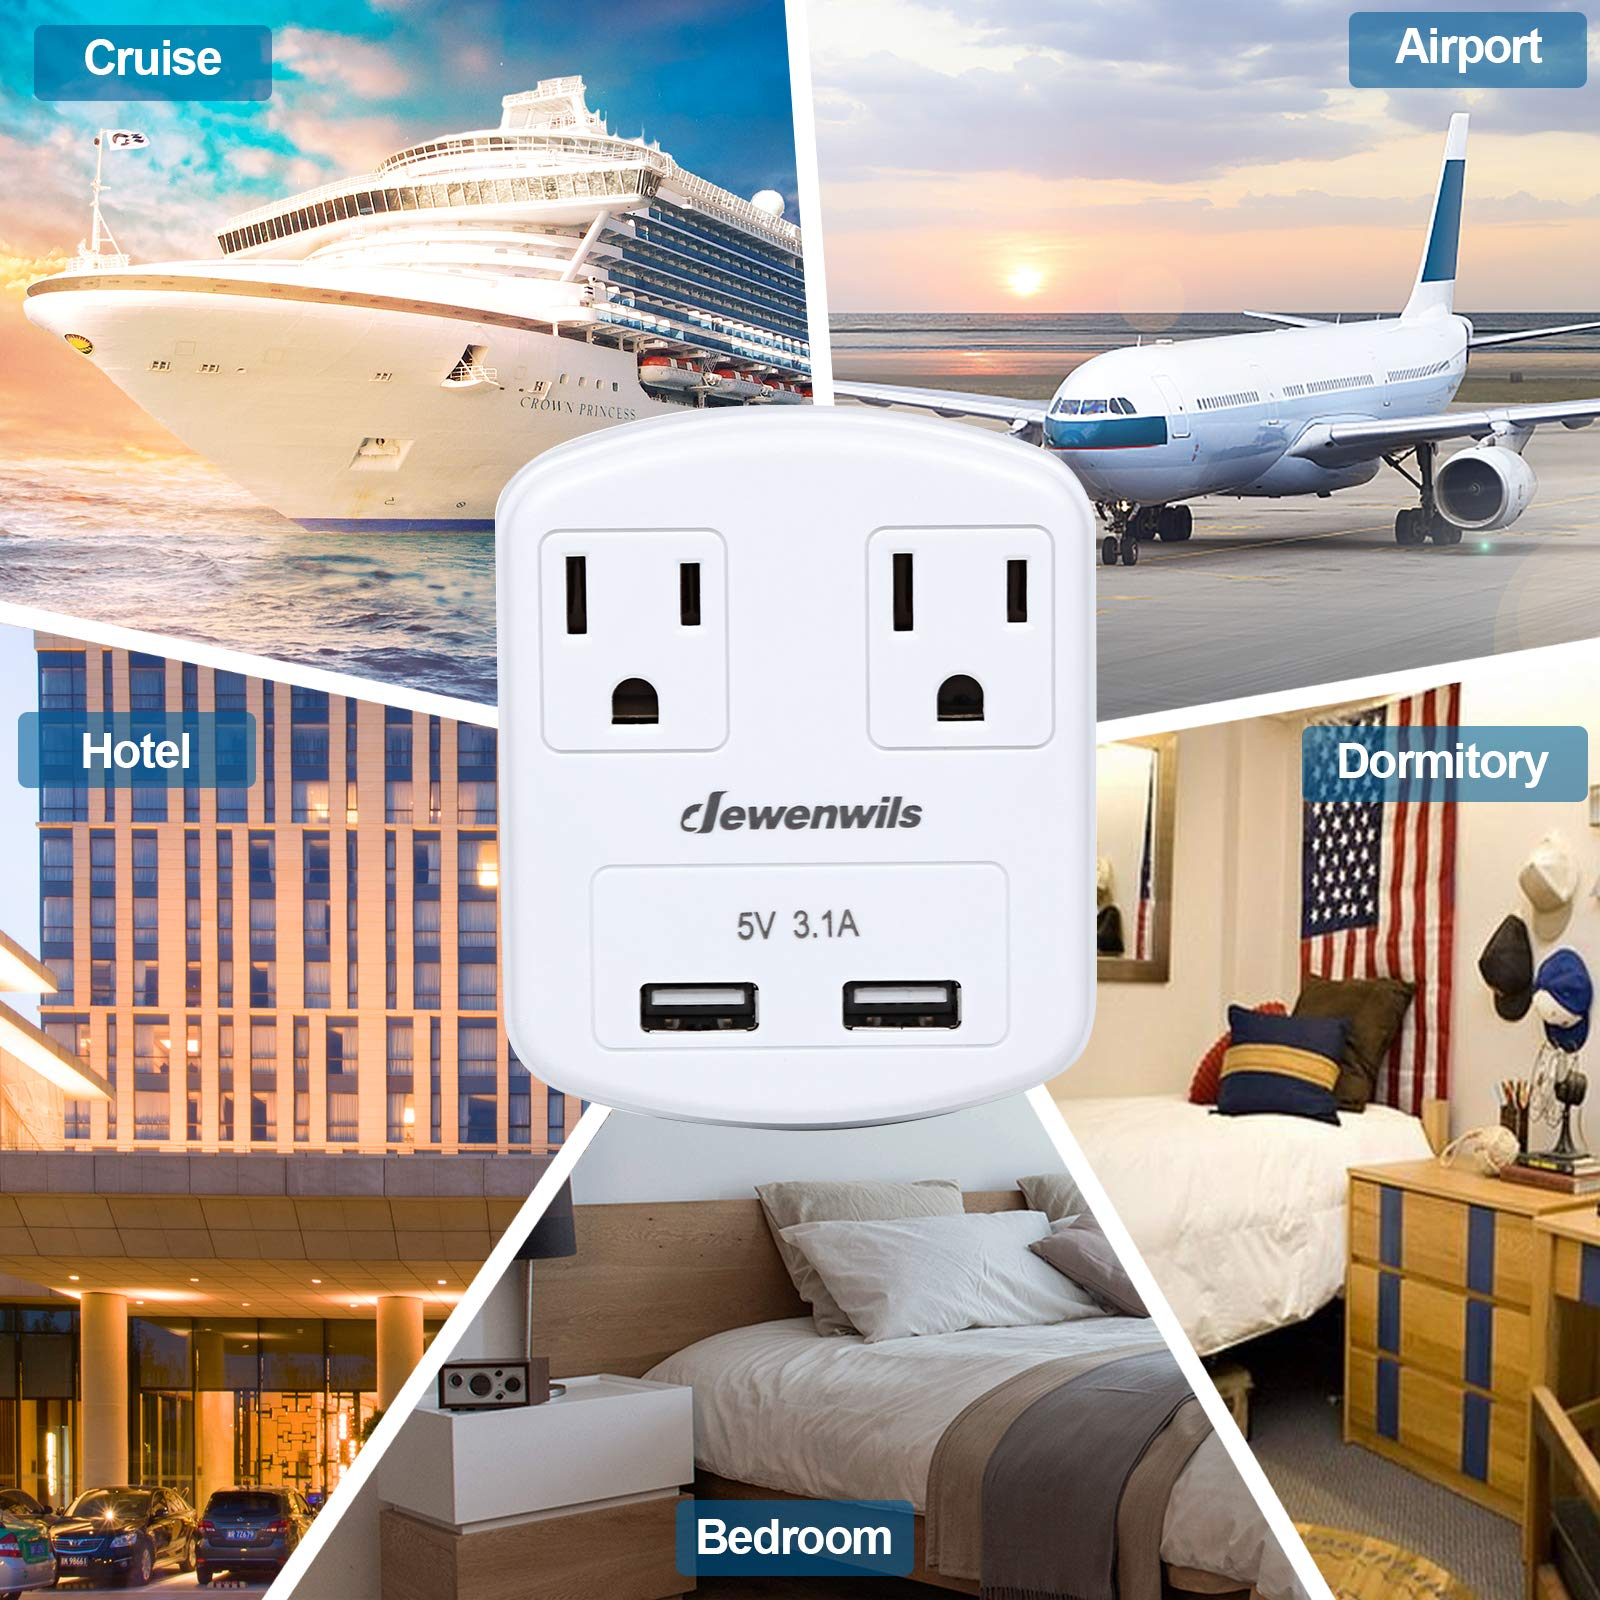 Dewenwils Multi Outlet Plug with 2 USB Ports (3.1A Total), Small Power Strip USB Charger for Cruise Ship/Hotel / Dormitory, Compatible with GFCI, ETL Listed, White by DEWENWILS (Image #6)